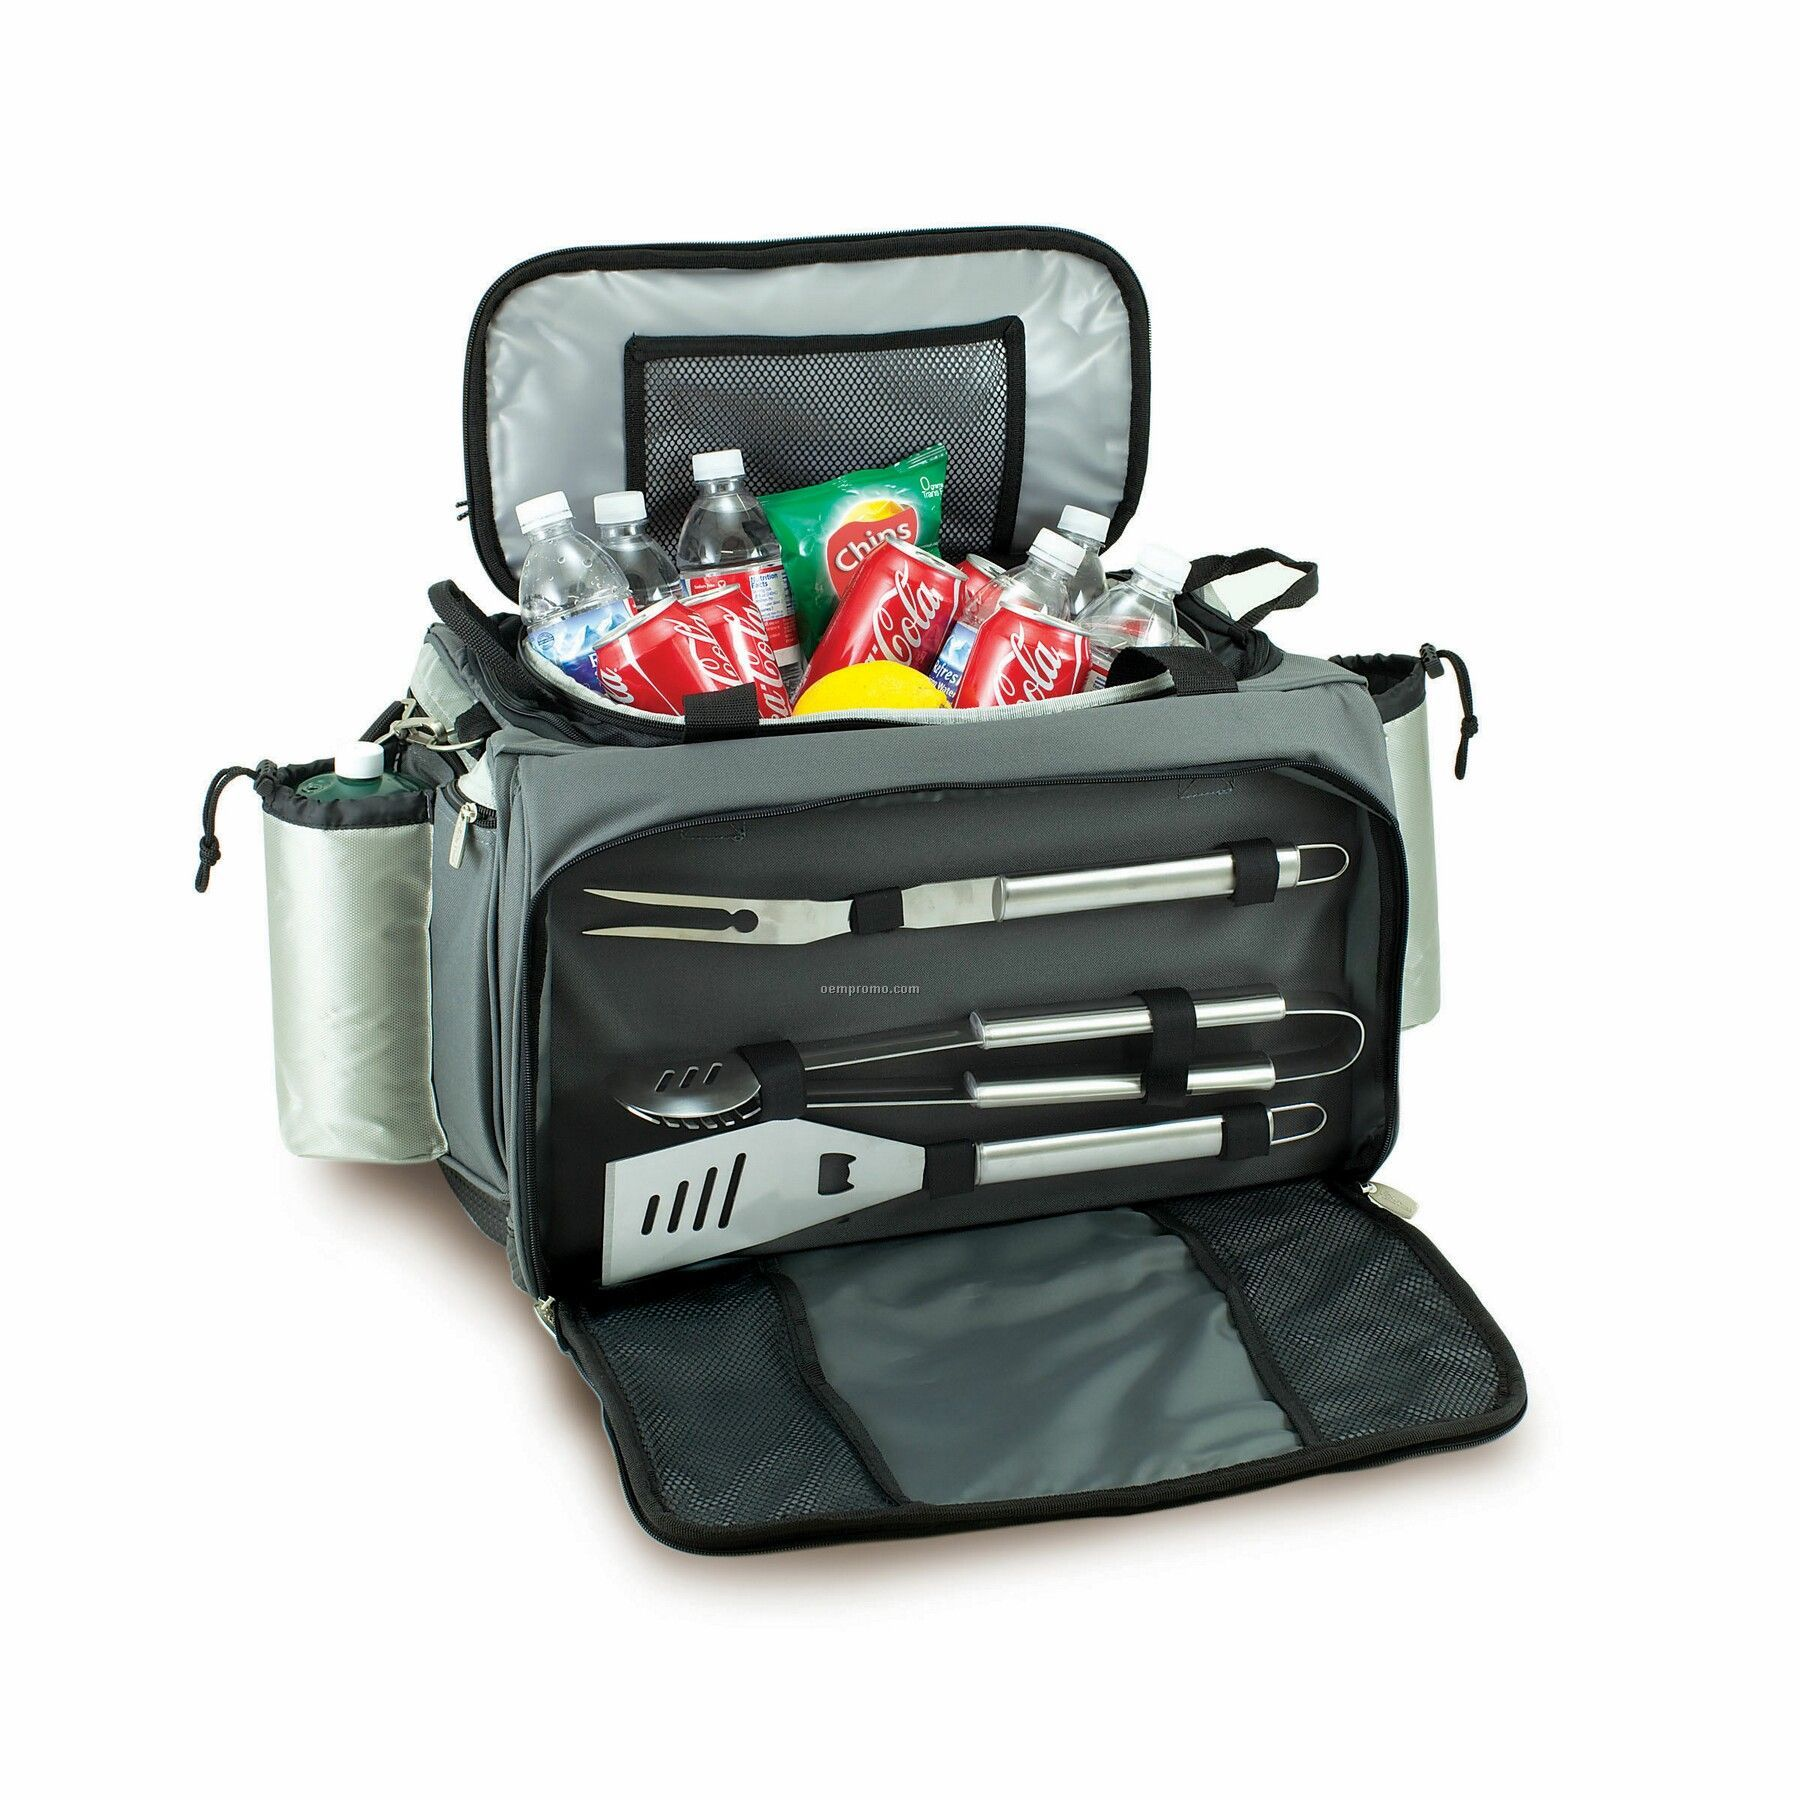 Vulcan Tailgating Cooler Tote W/ Gas Grill & 3 Bbq Tools